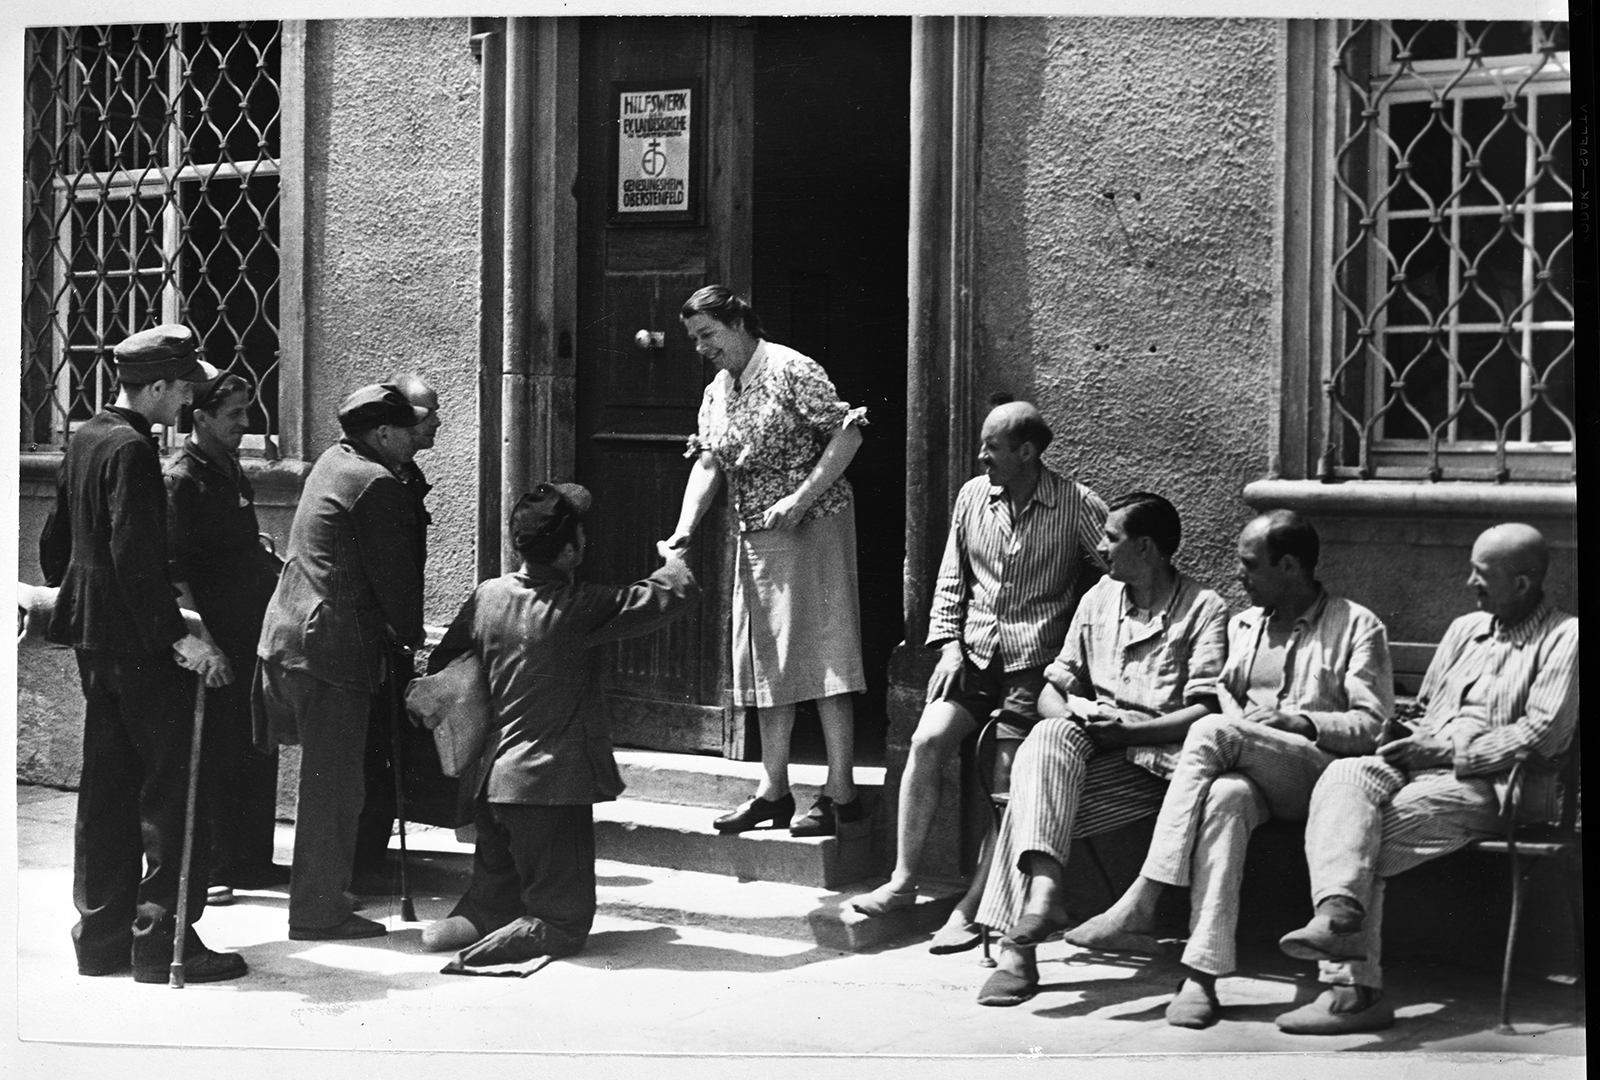 A Hilfswerk worker, center, welcomes disabled German war veterans to a home operated by the Protestant Relief Agency in Oberstenfeld, Germany, located in the American zone, circa 1948. RNS archive photo. Photo courtesy of the Presbyterian Historical Society.